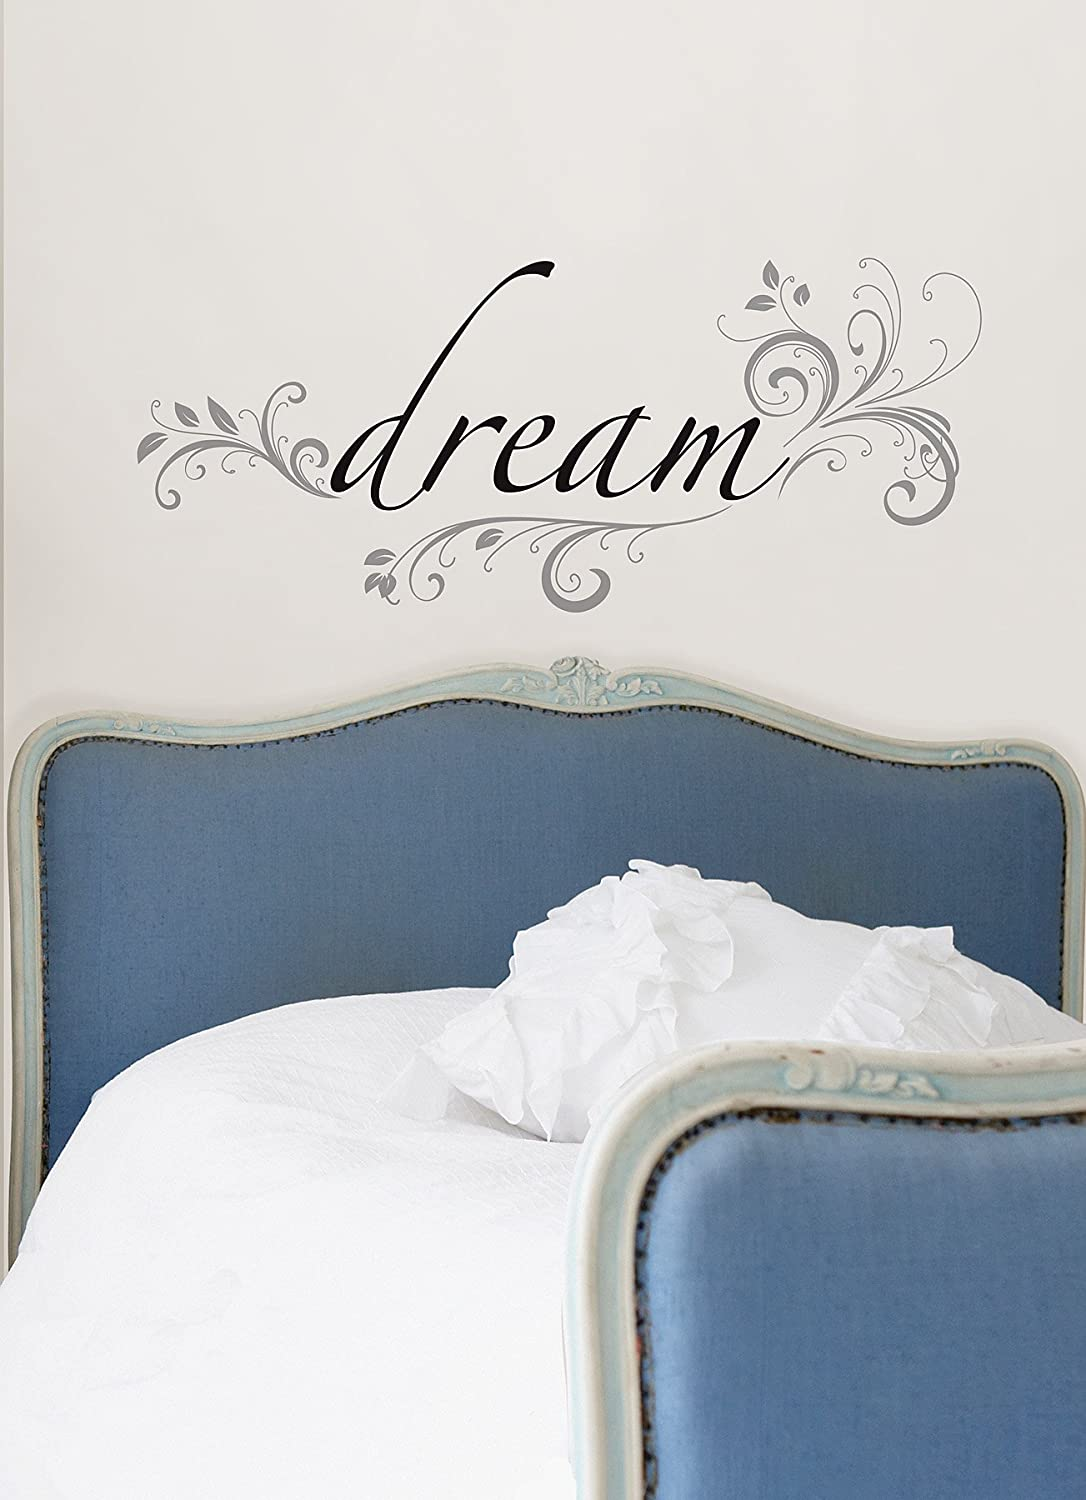 Wall pops wpq96852 peel stick dream quotes wall decals wall pops wpq96852 peel stick dream quotes wall decals decorative wall appliques amazon amipublicfo Images